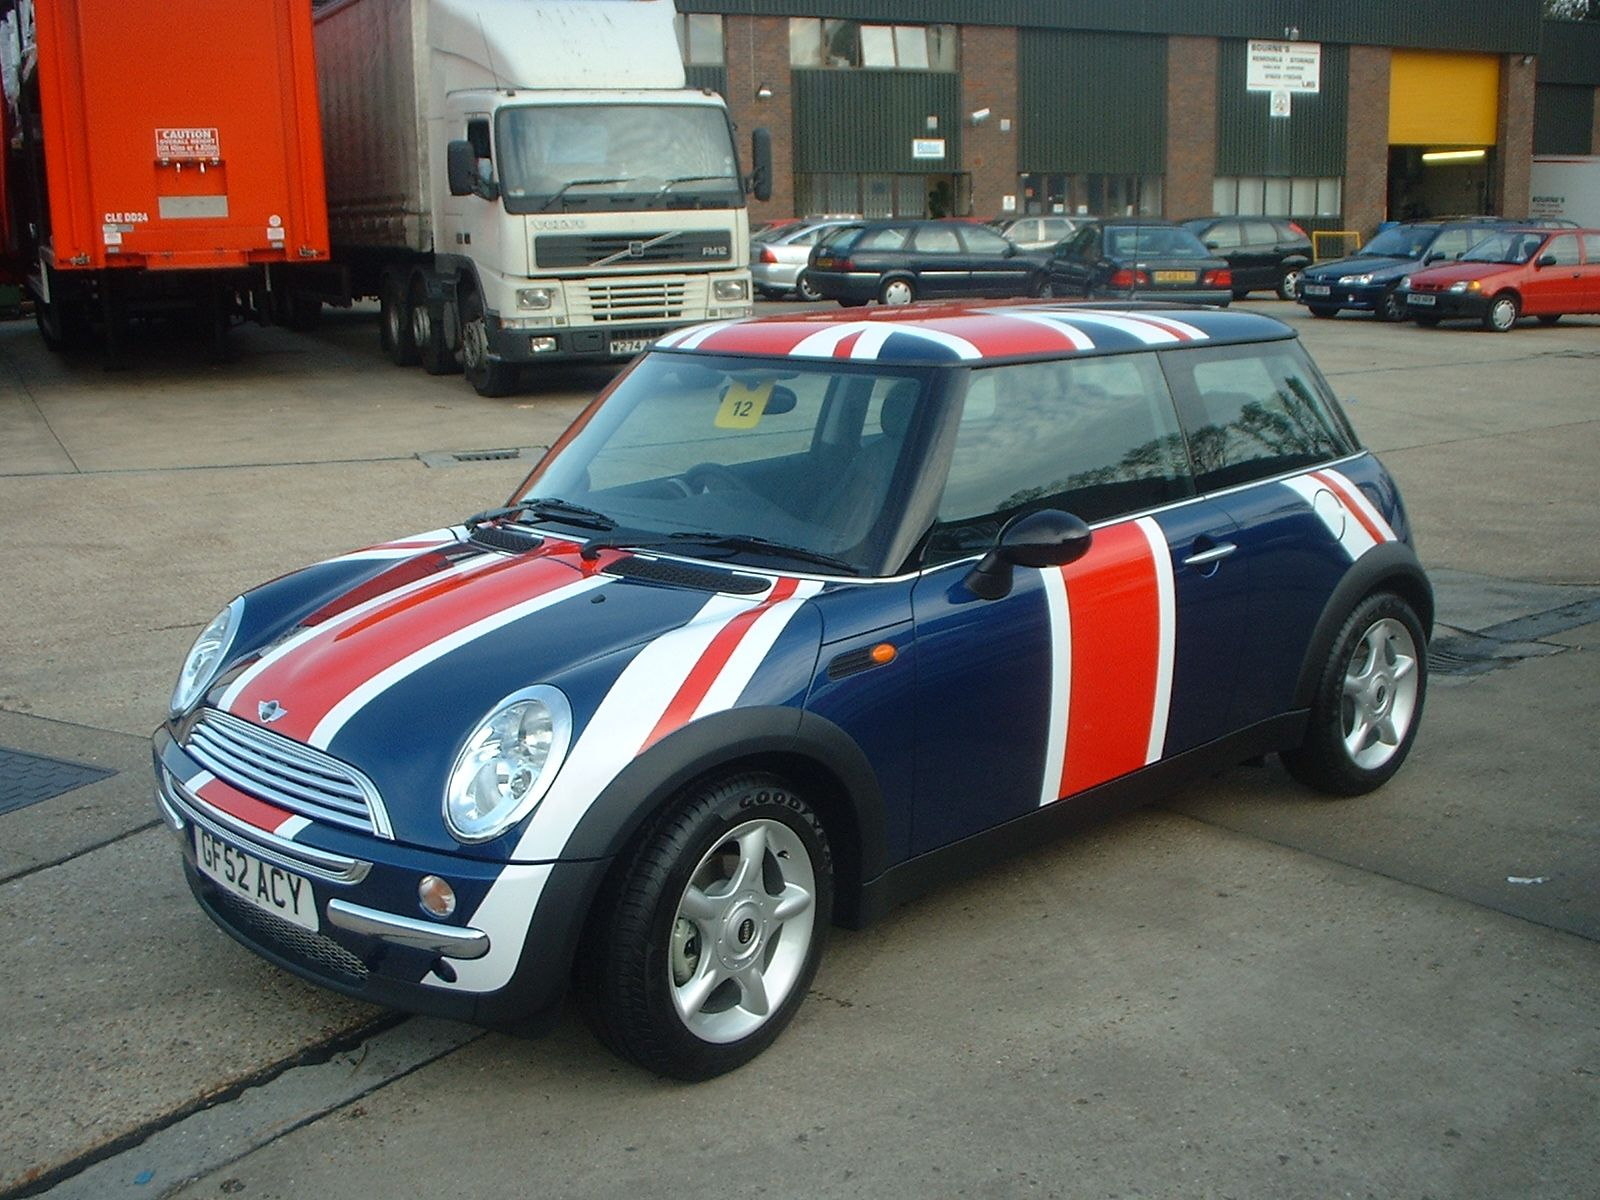 union jack mini cooper my dream beep beep motherf ers. Black Bedroom Furniture Sets. Home Design Ideas